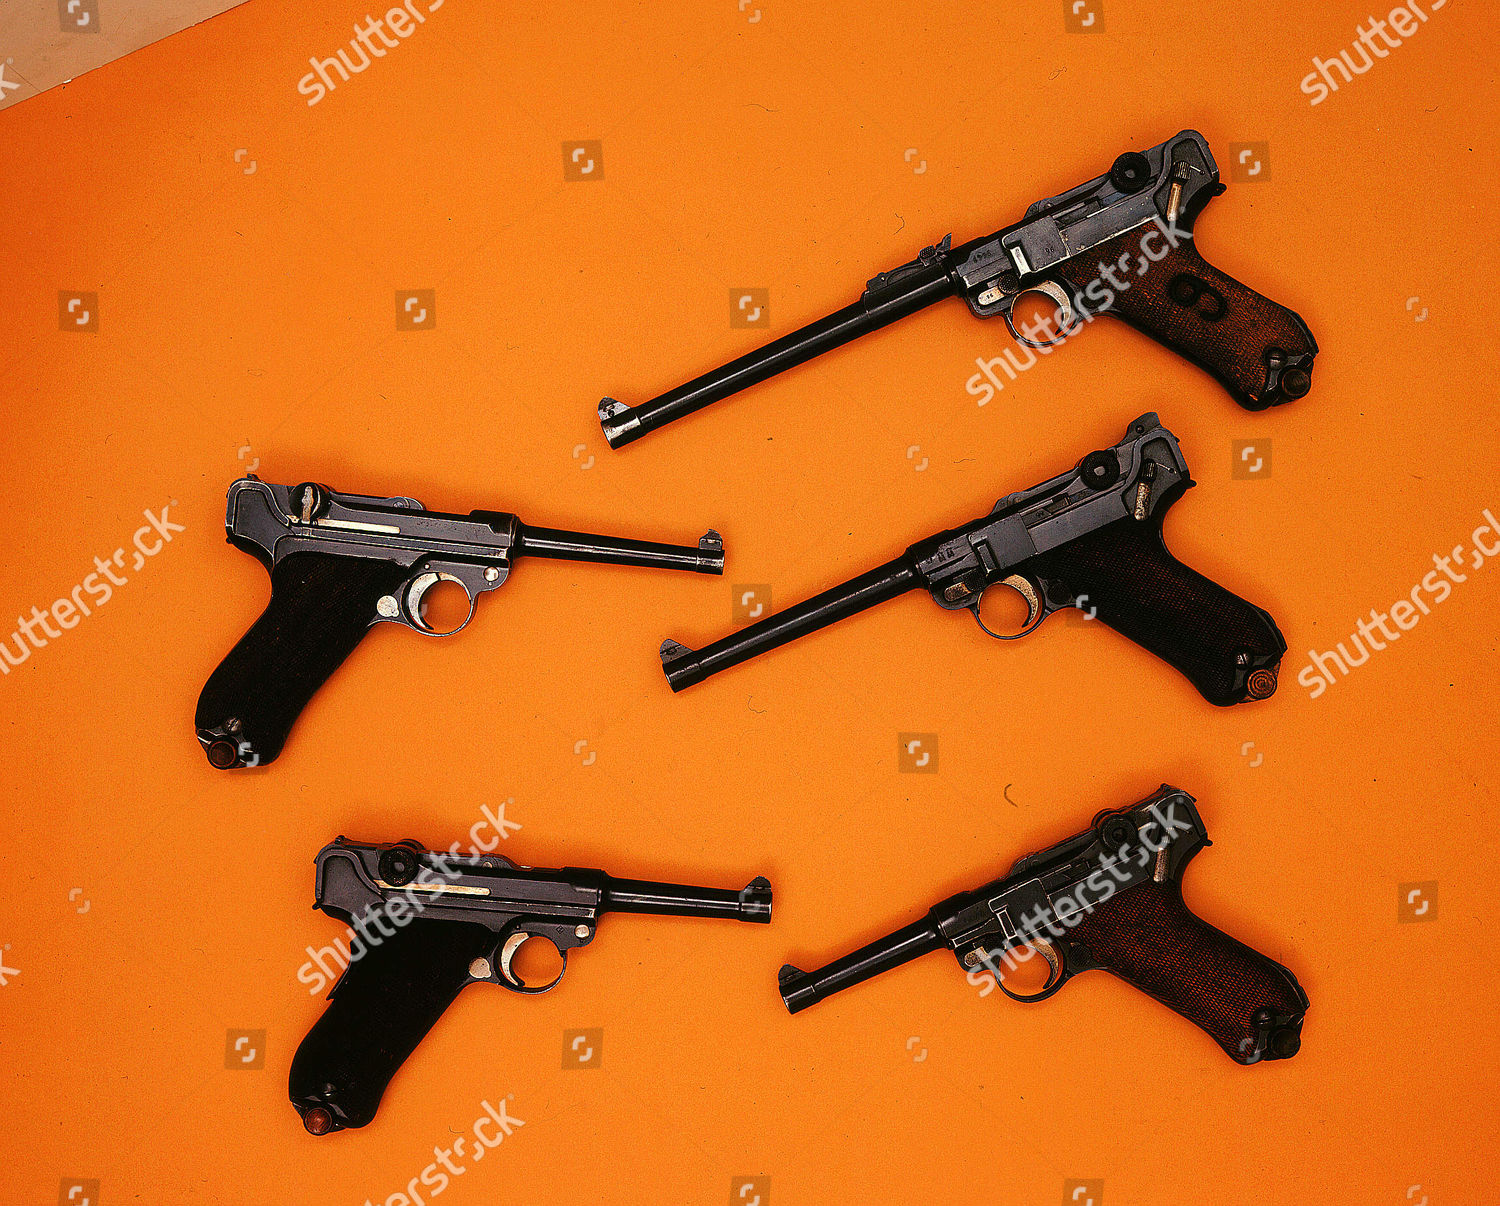 Luger 9mm automatic pistols 48 inch barrels Editorial Stock Photo